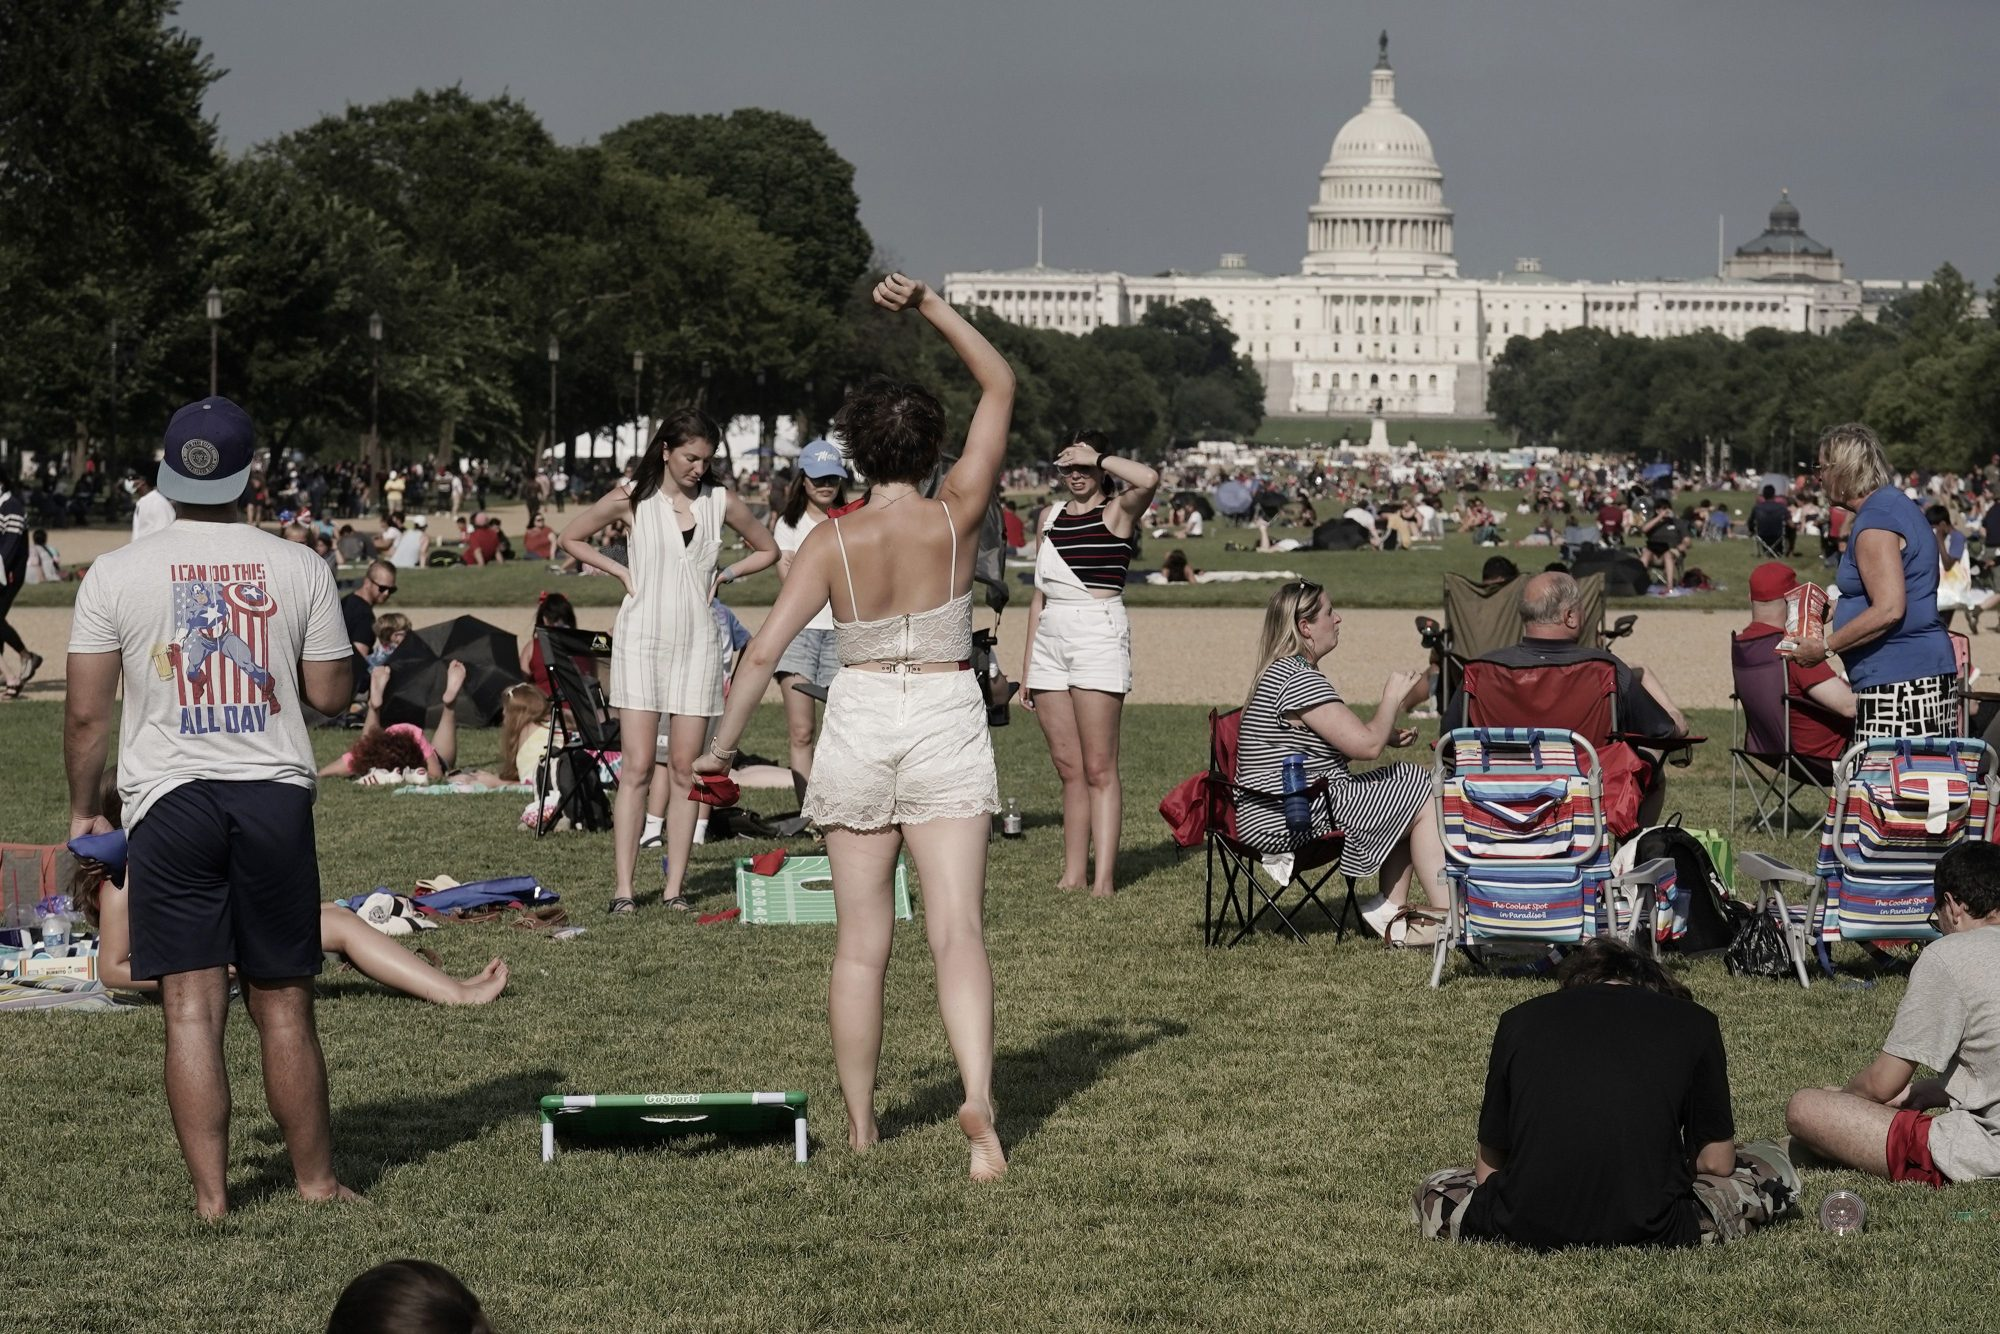 People gather to celebrate America's 245th Independence Day on the National Mall